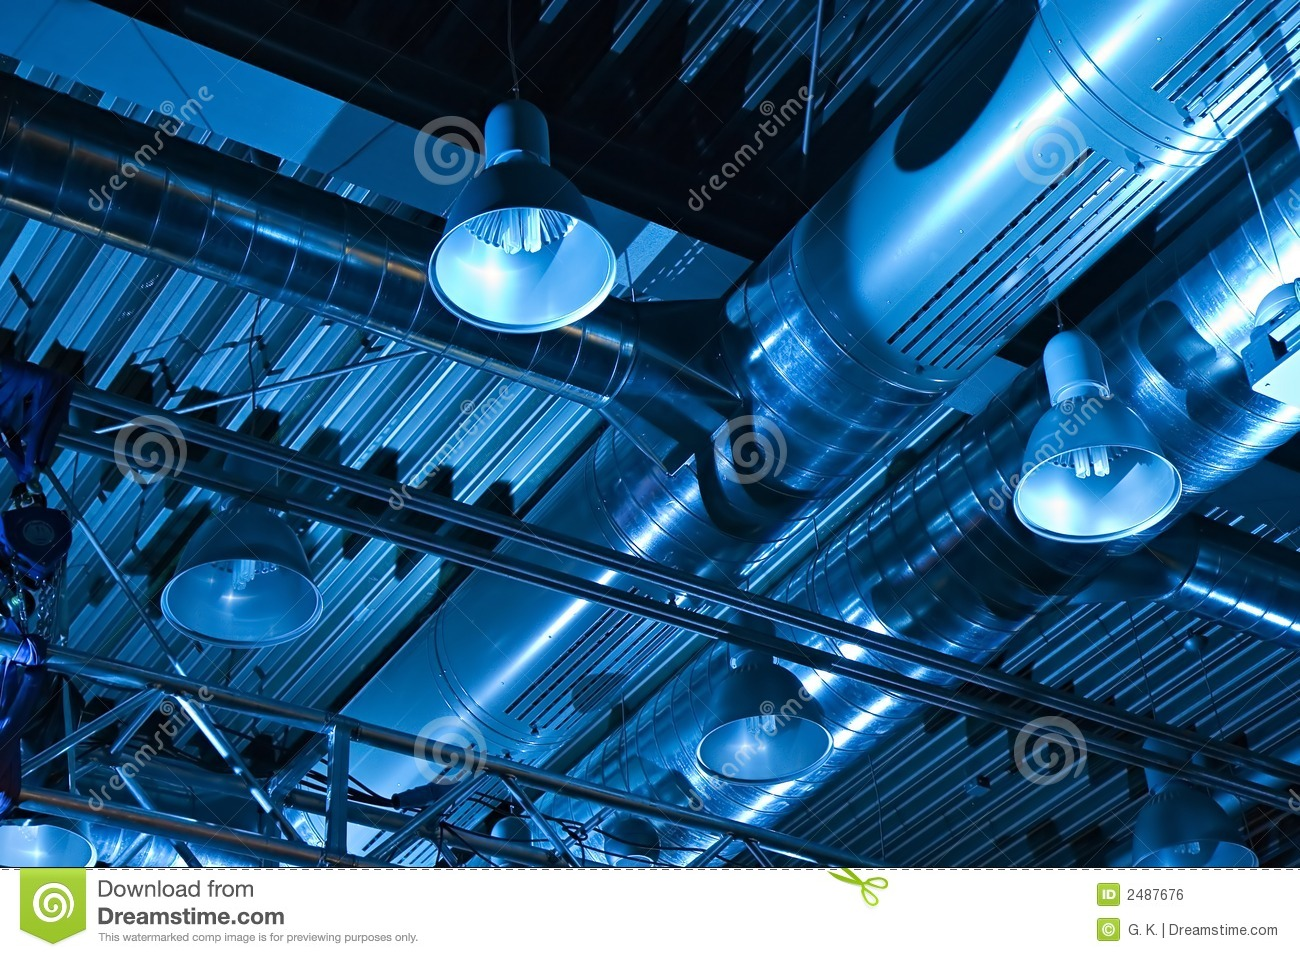 Ventilation System Royalty Free Stock Image.